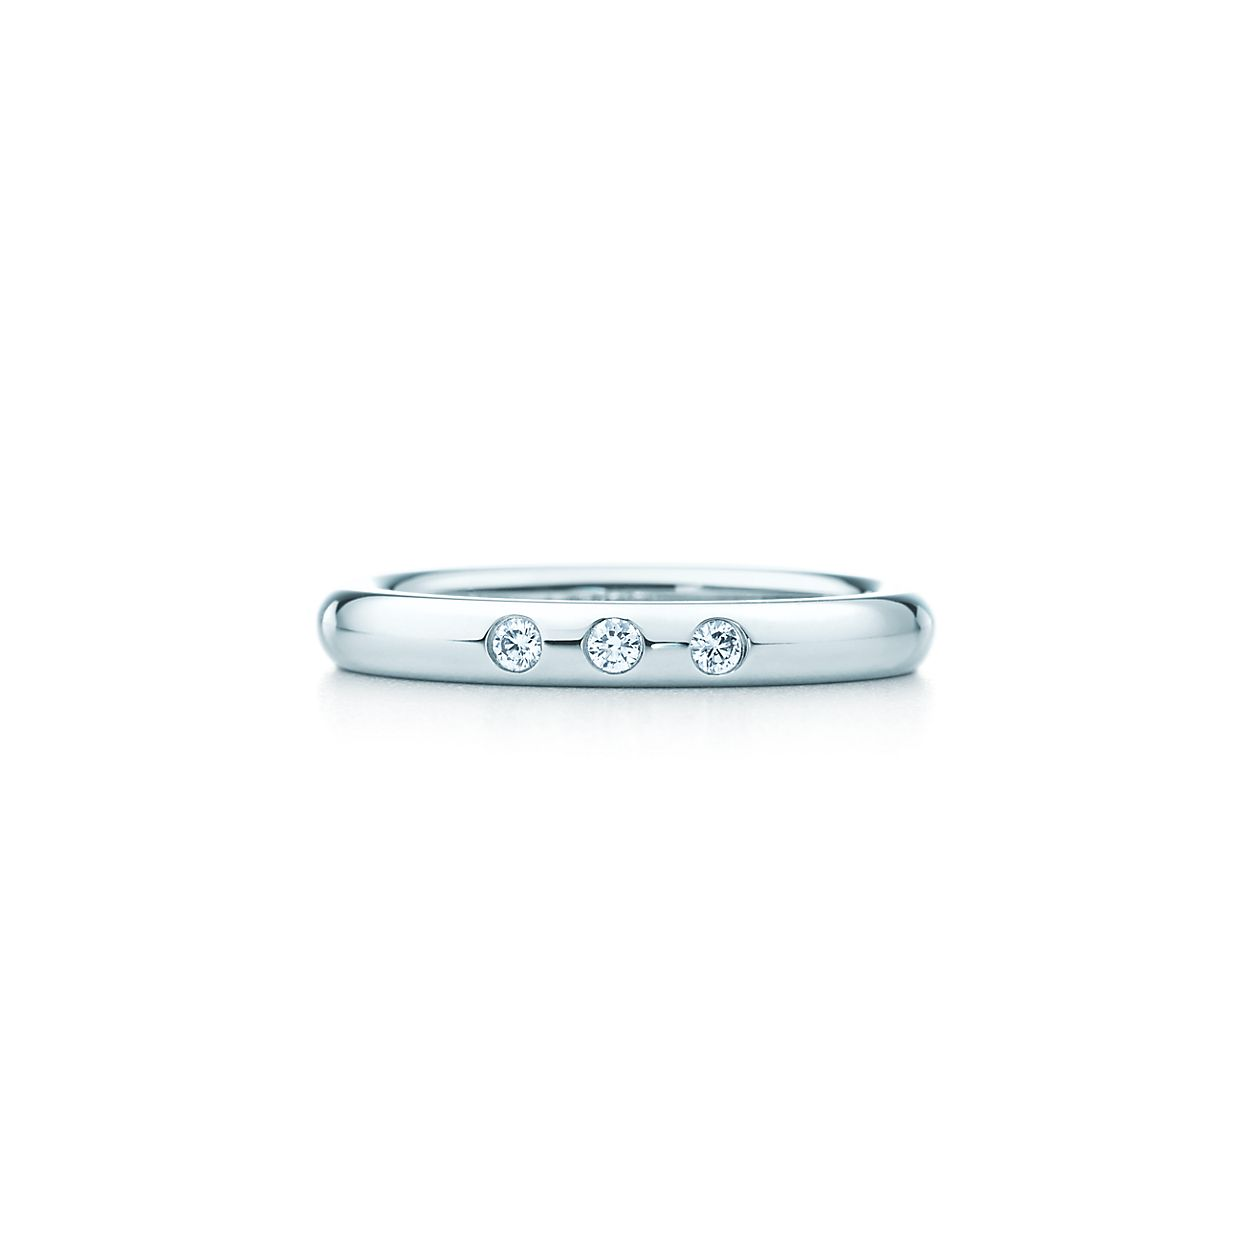 Elsa Peretti stacking band ring in platinum - Size 6 1/2 Tiffany & Co. d4t5P1Sf10